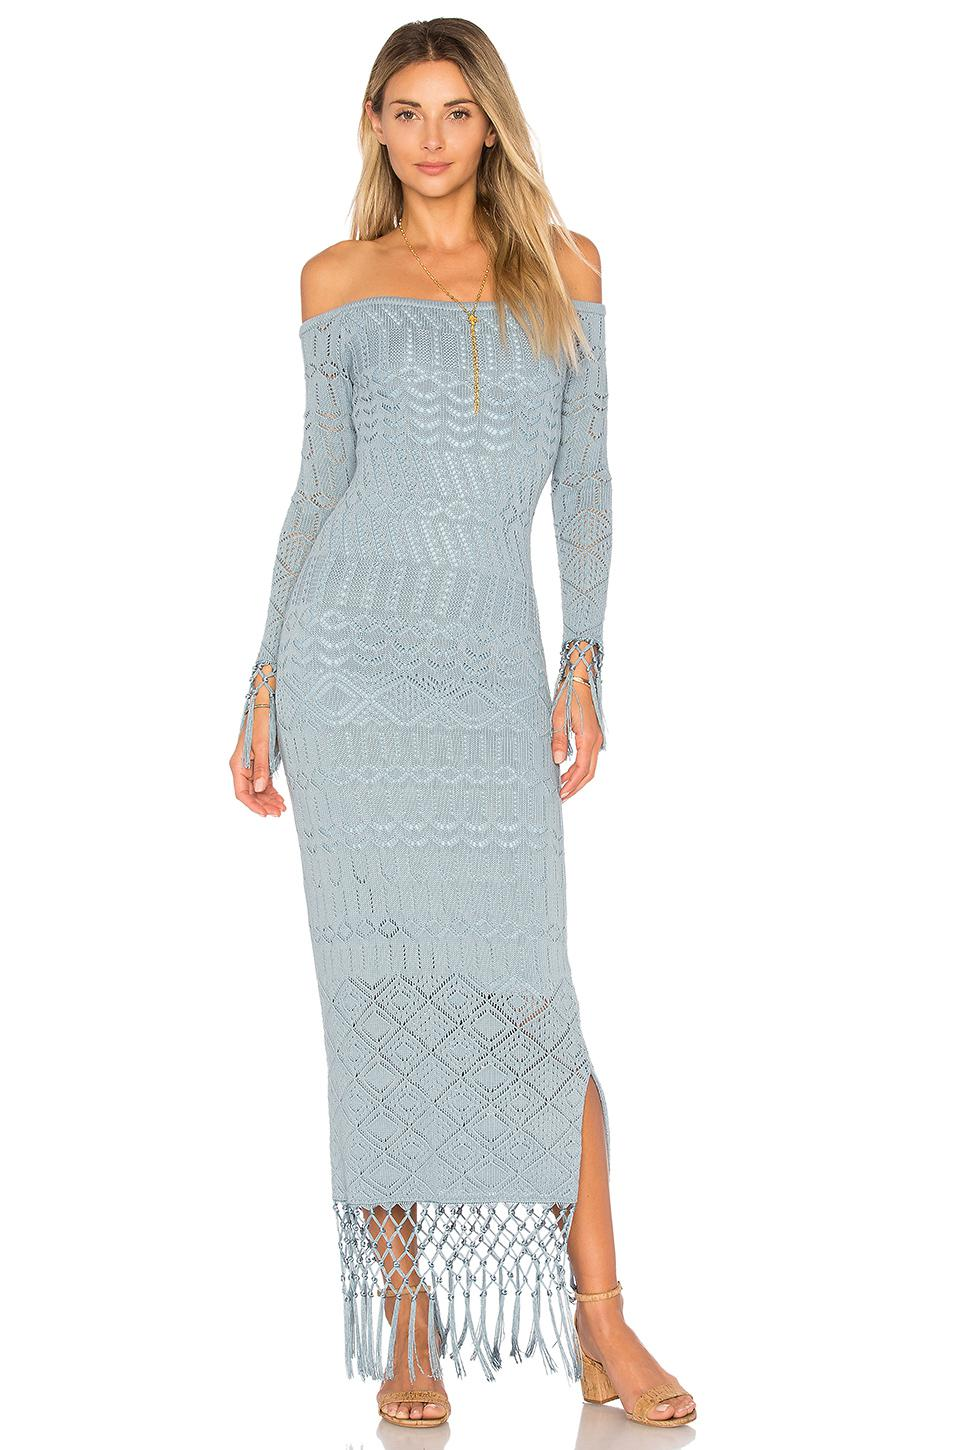 Lyst - House Of Harlow 1960 X Revolve Rose Dress in Blue